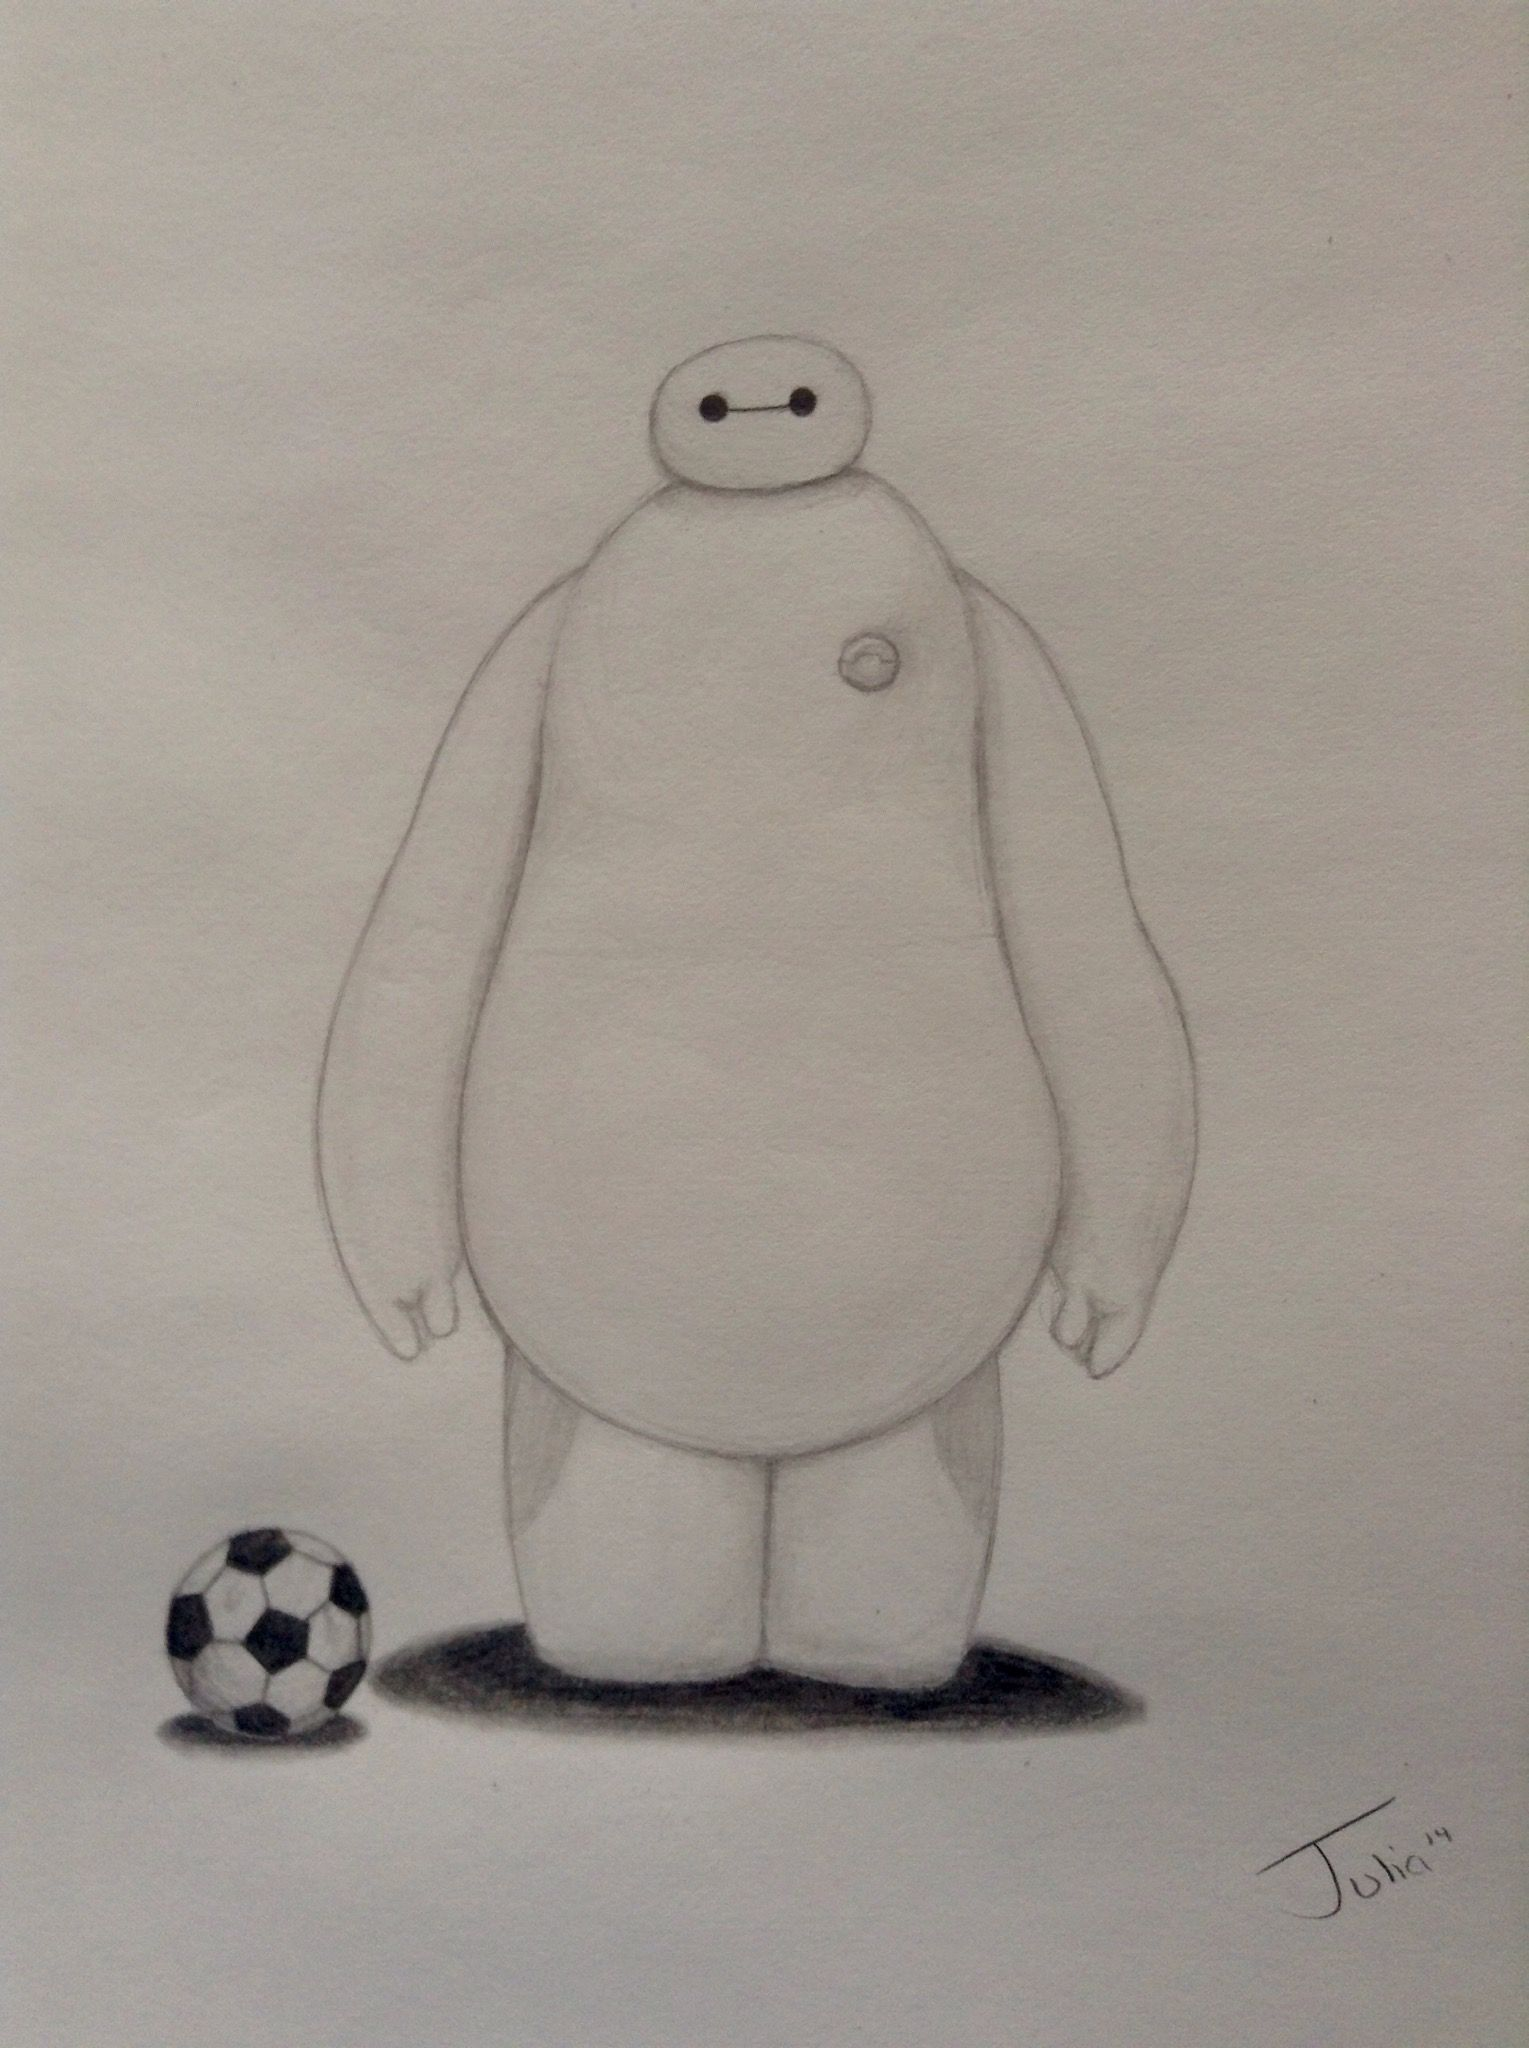 How to draw baymax from disneys big hero 6